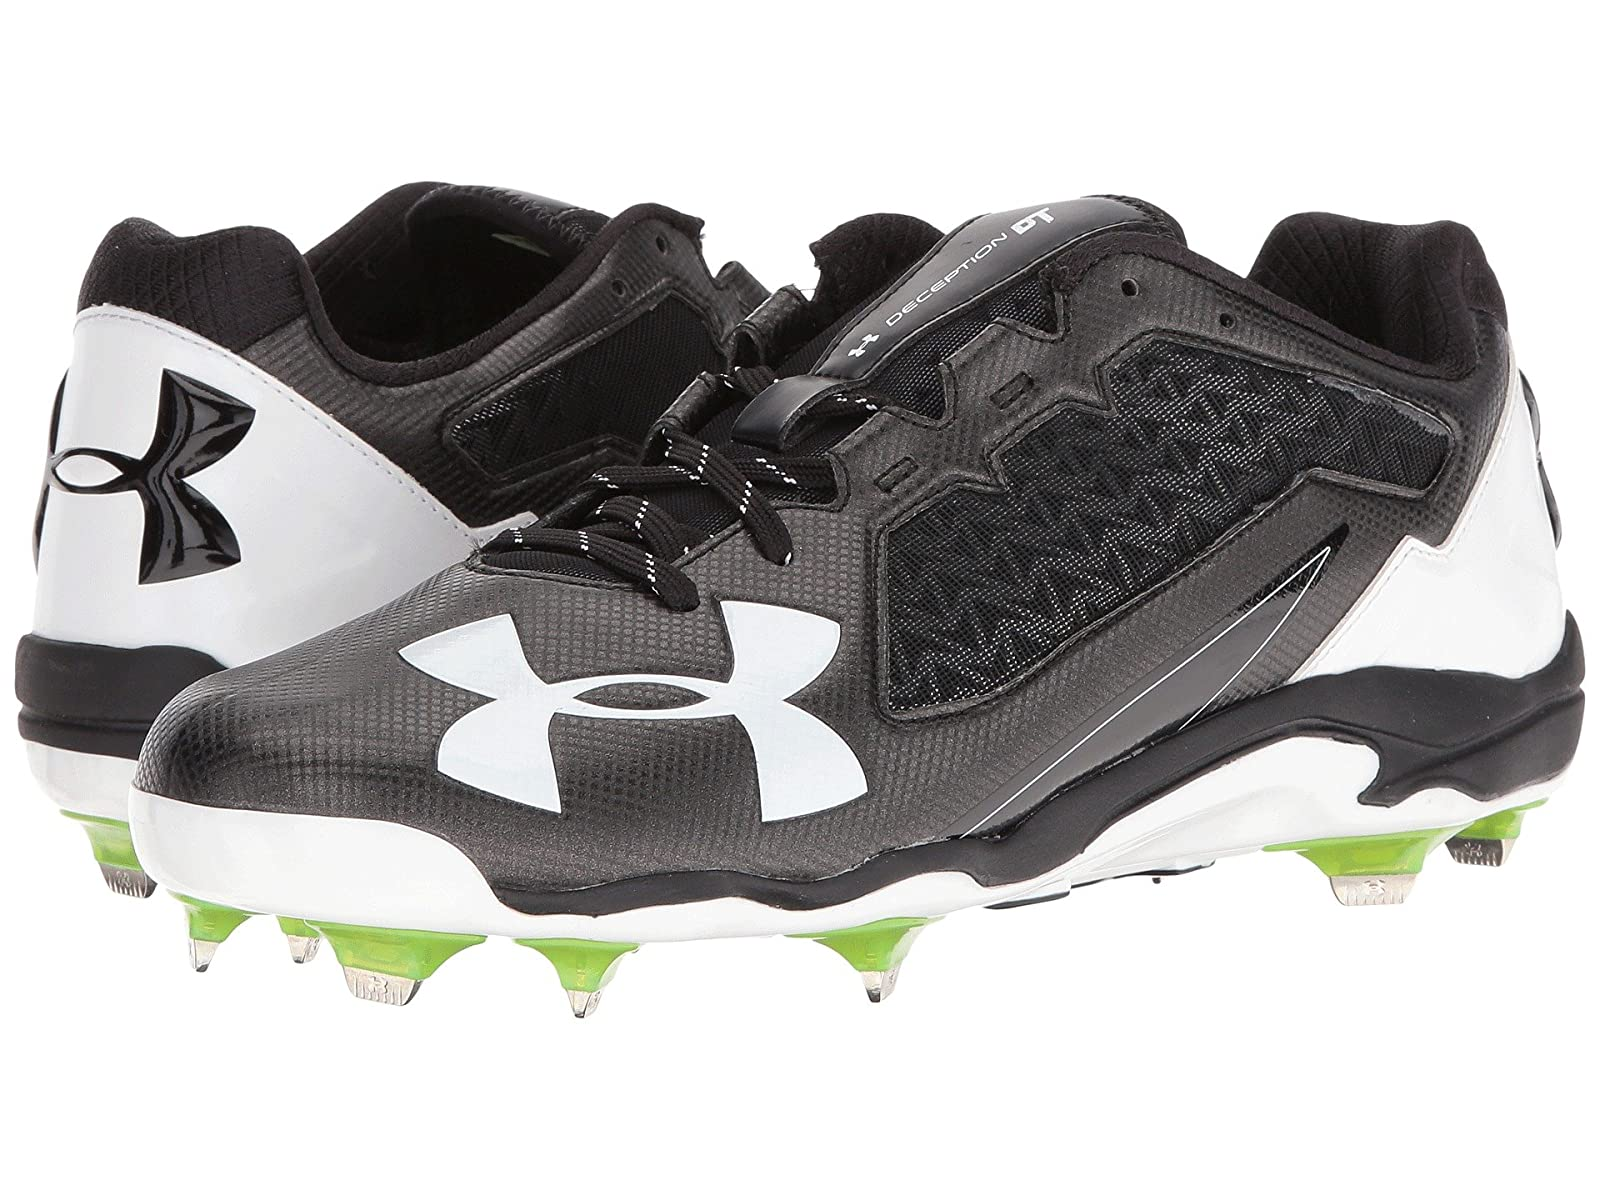 Under Armour UA Deception Low DTCheap and distinctive eye-catching shoes